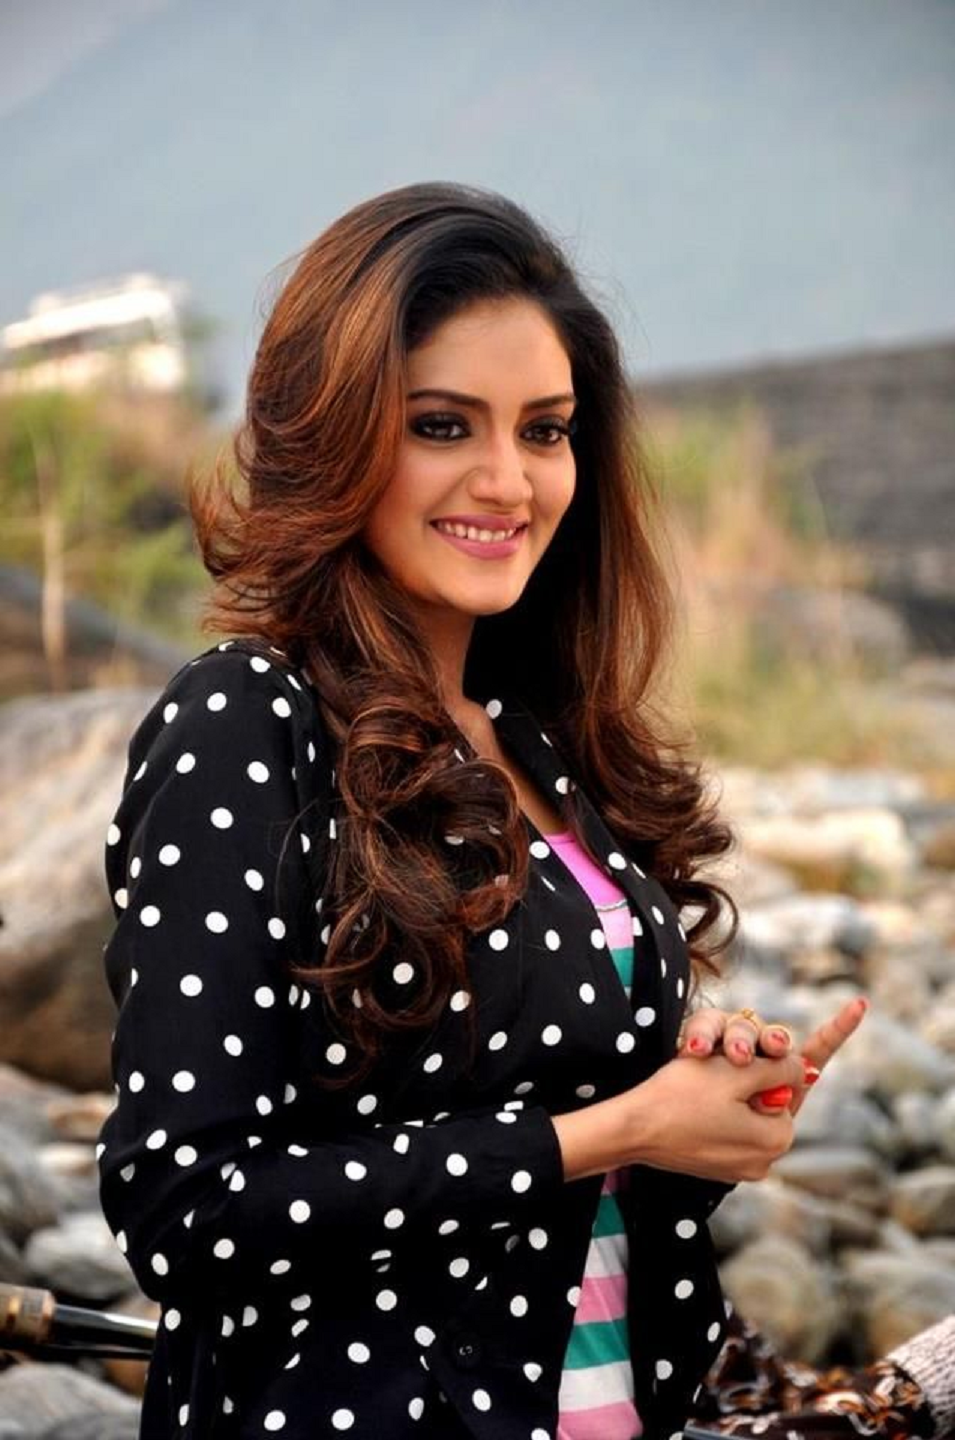 Best Popular Celebrities: Most Popular Celebrities Nusrat